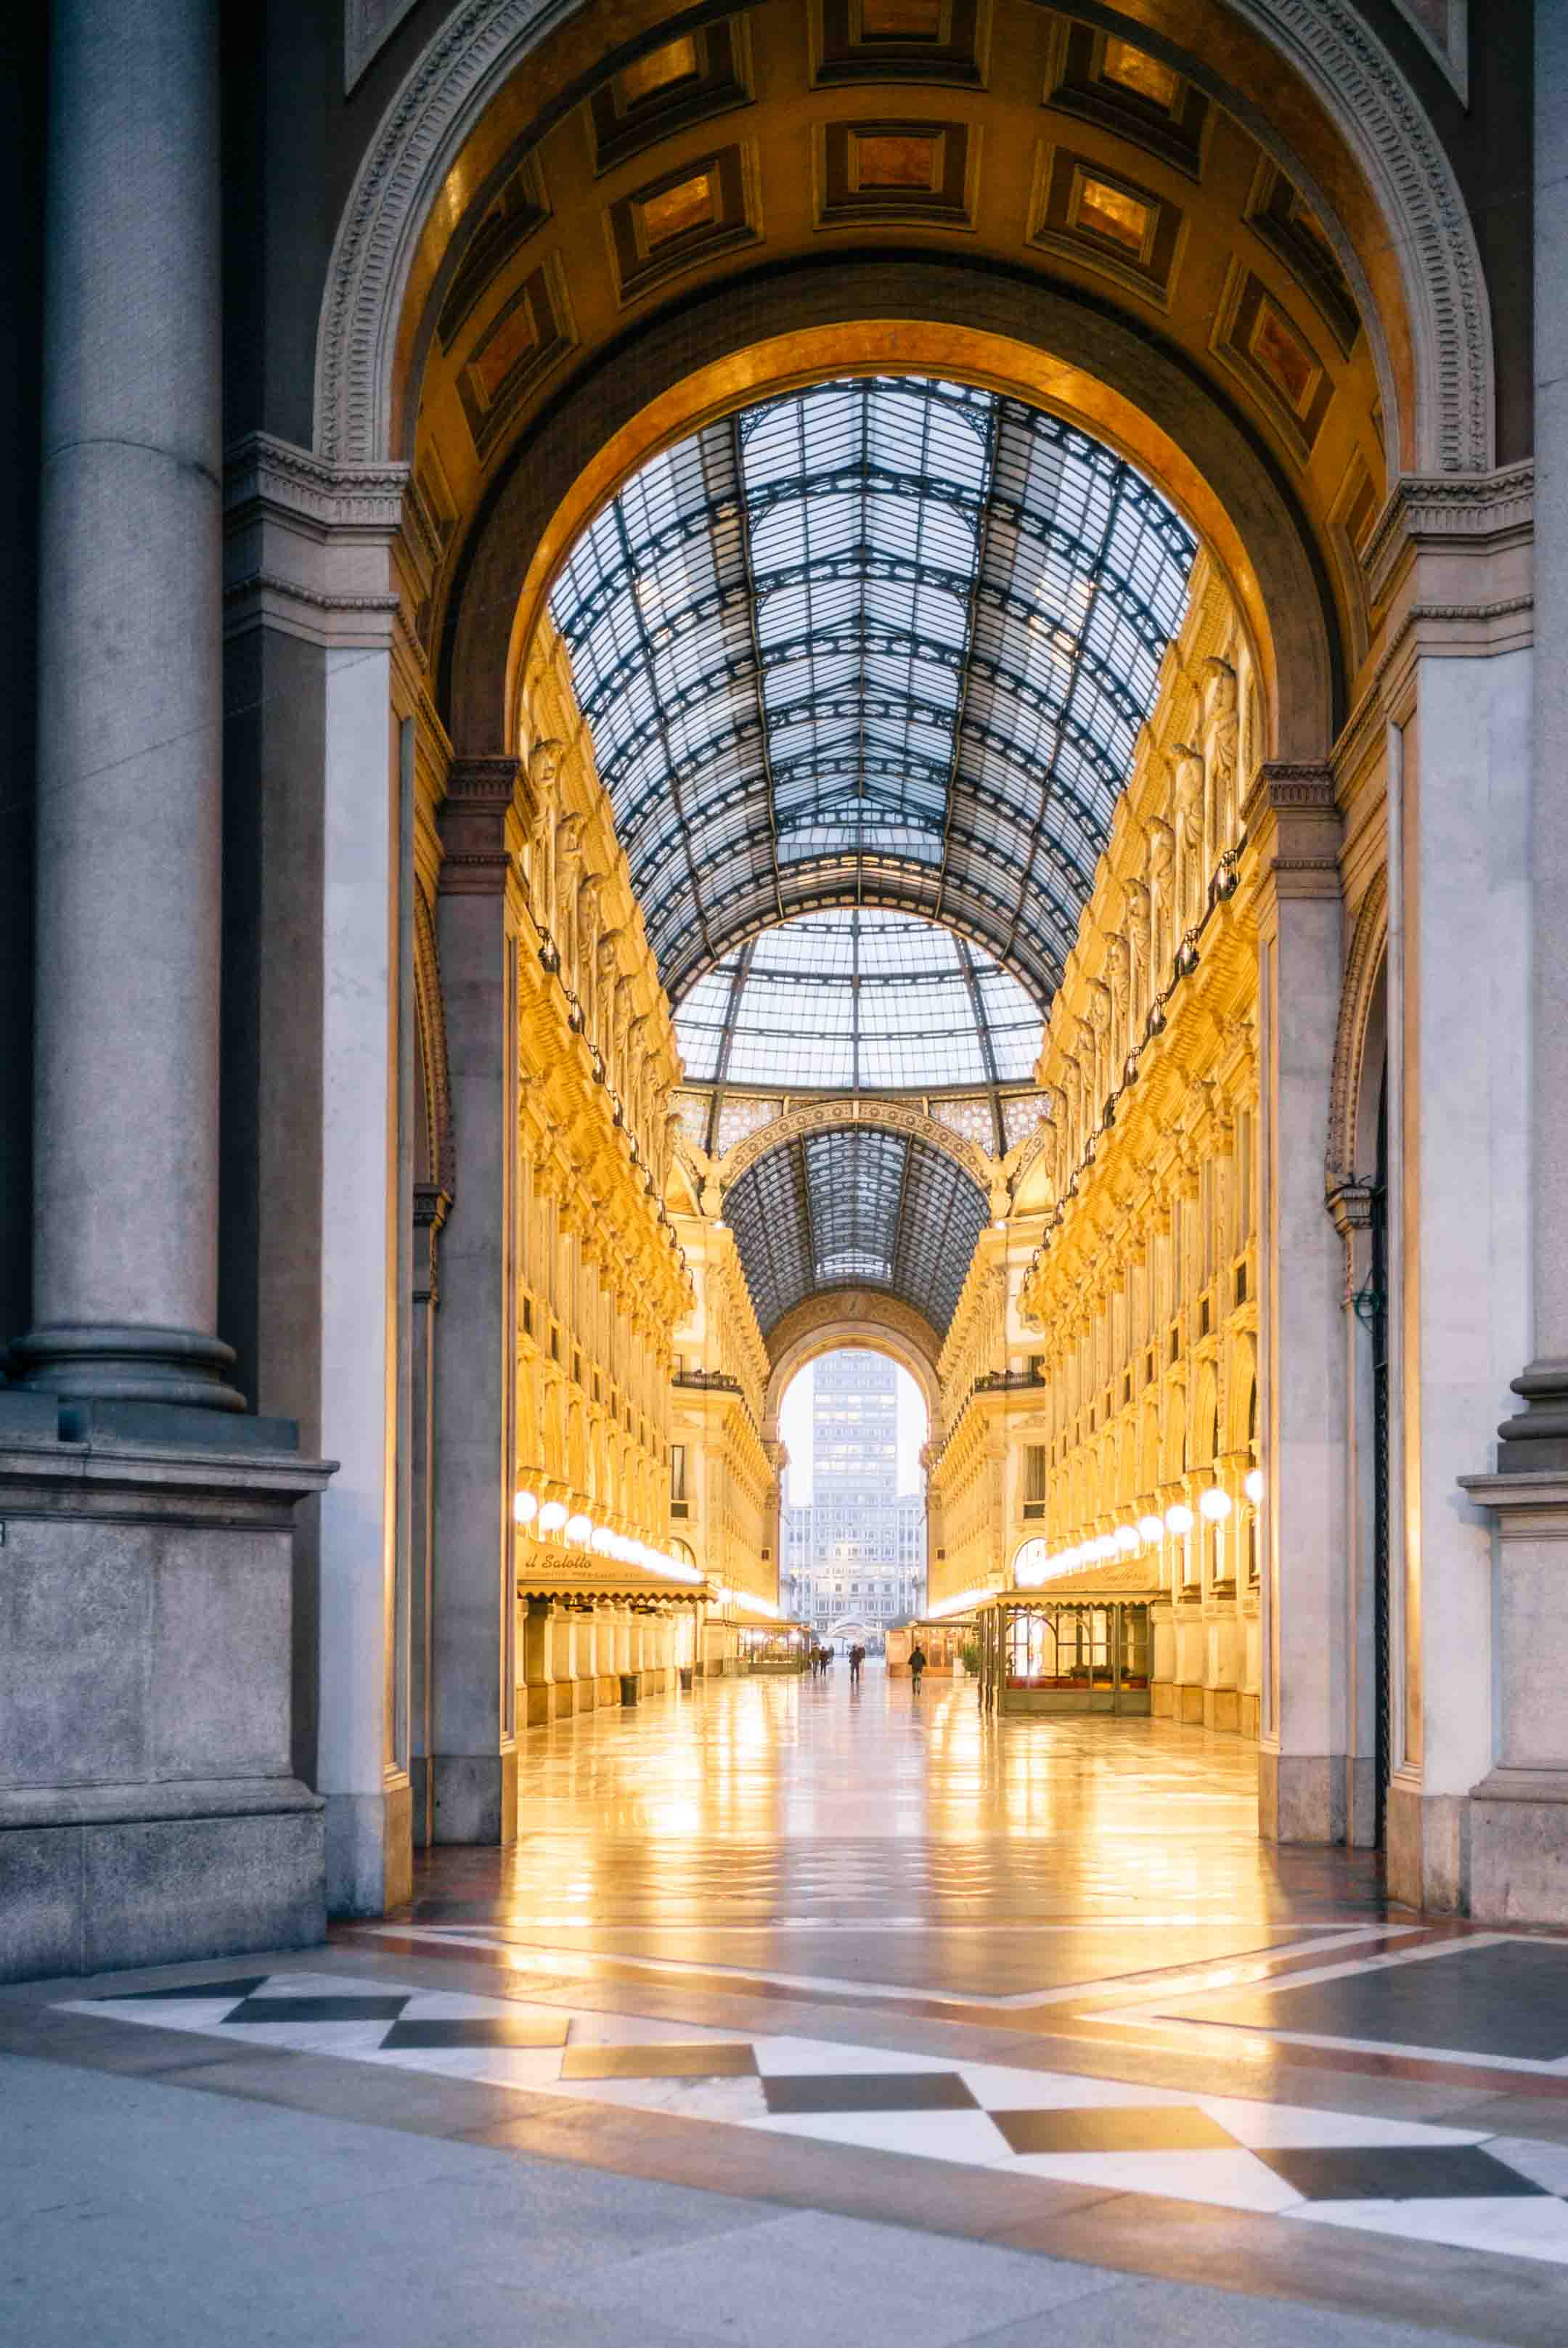 Visit the galleria vittorio emanuele in Milan, Italy The Taste Edit